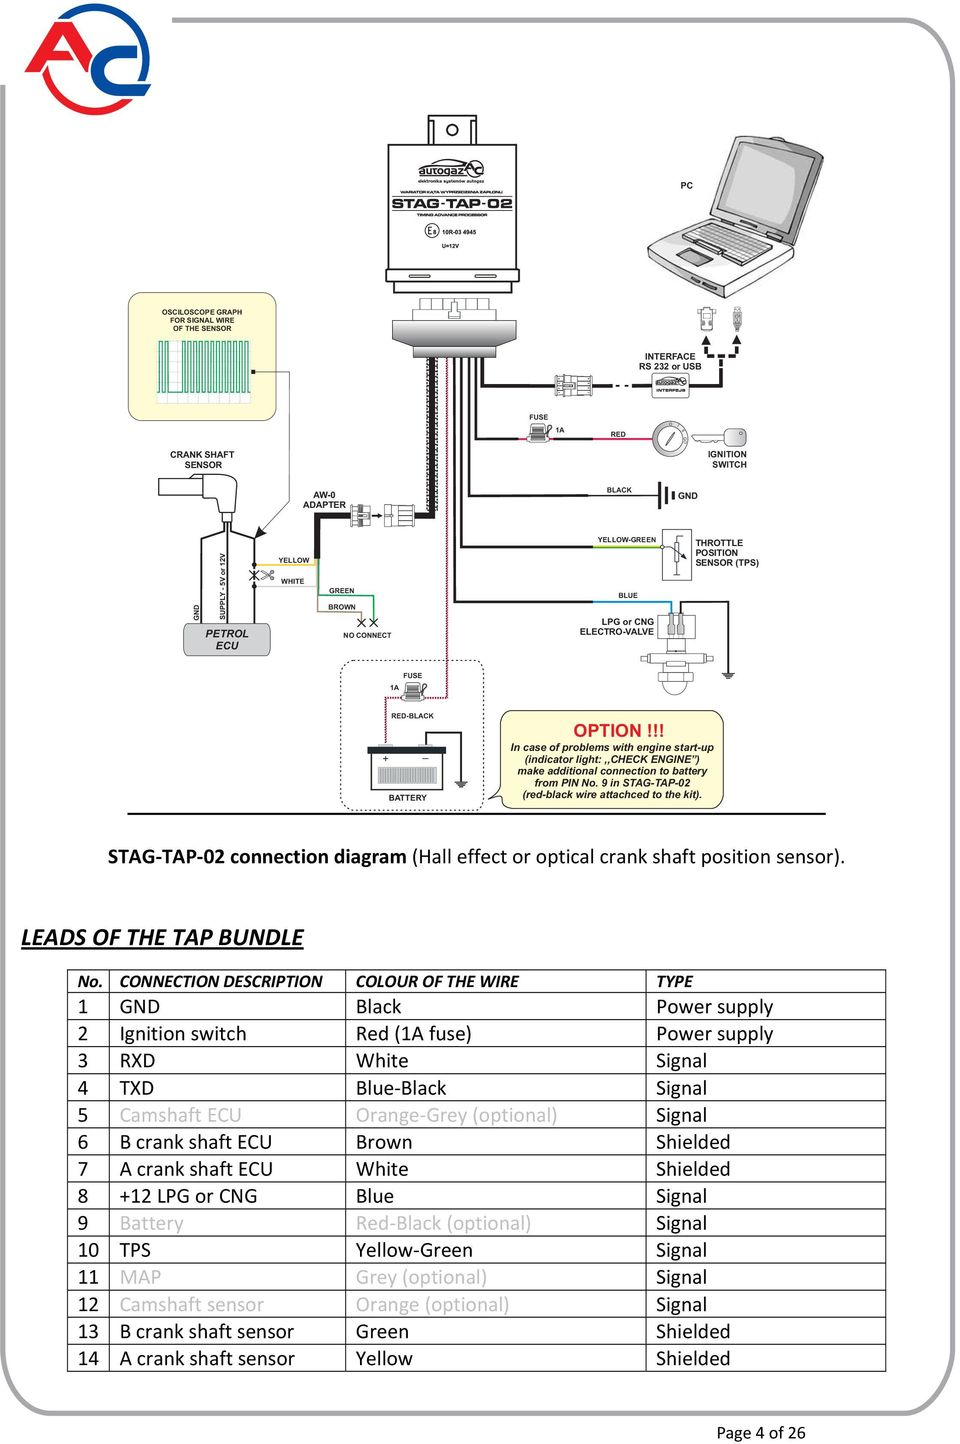 Connection And Programming Instructions Pdf 2004 Audi 1 8t Wiring Diagram 9 In Stag Tap 02 Red Black Wire Attachced To The Kit